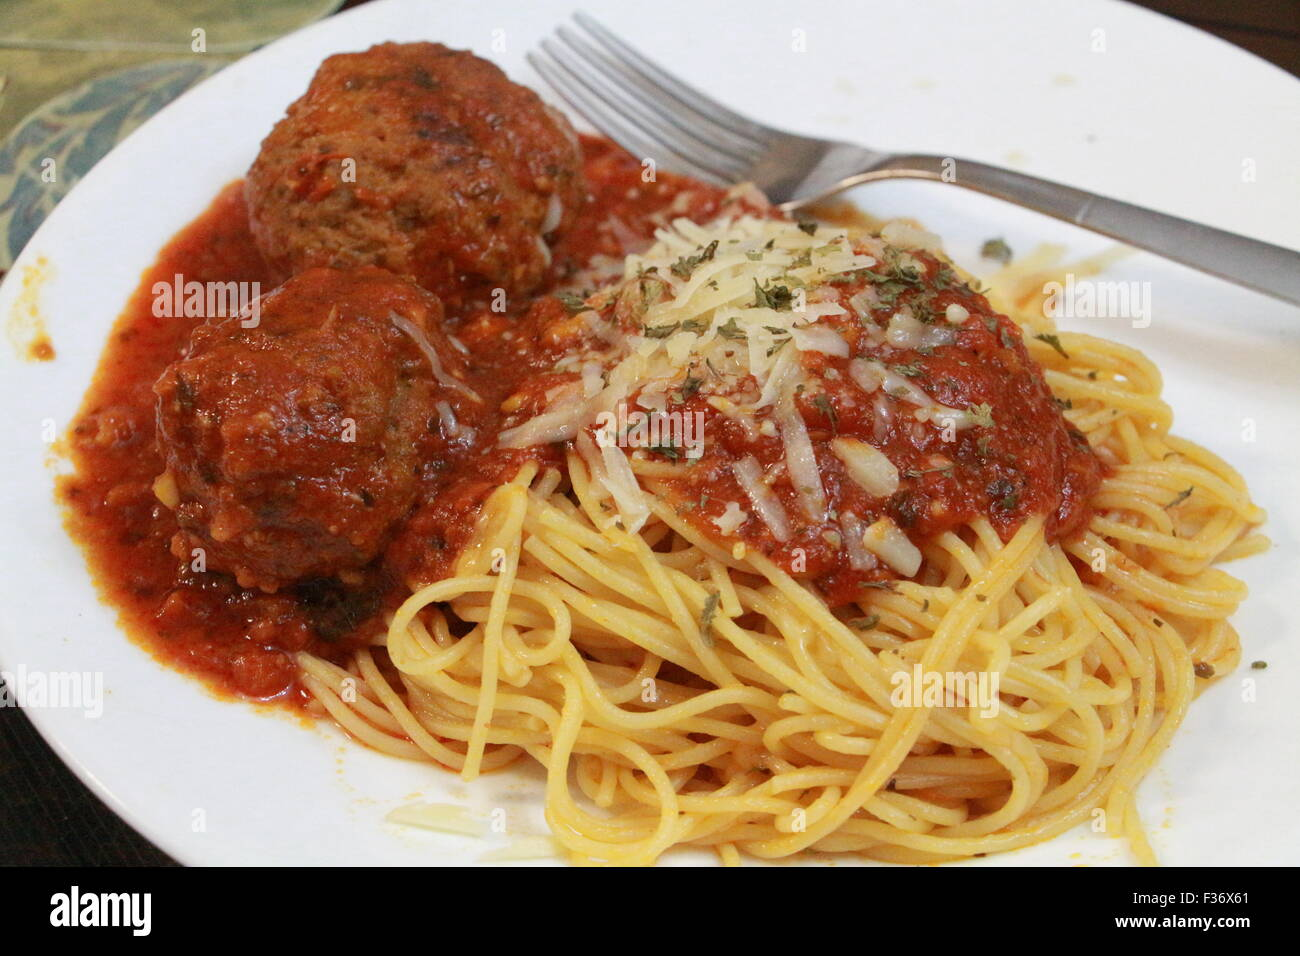 Spaghetti and meat balls - Stock Image